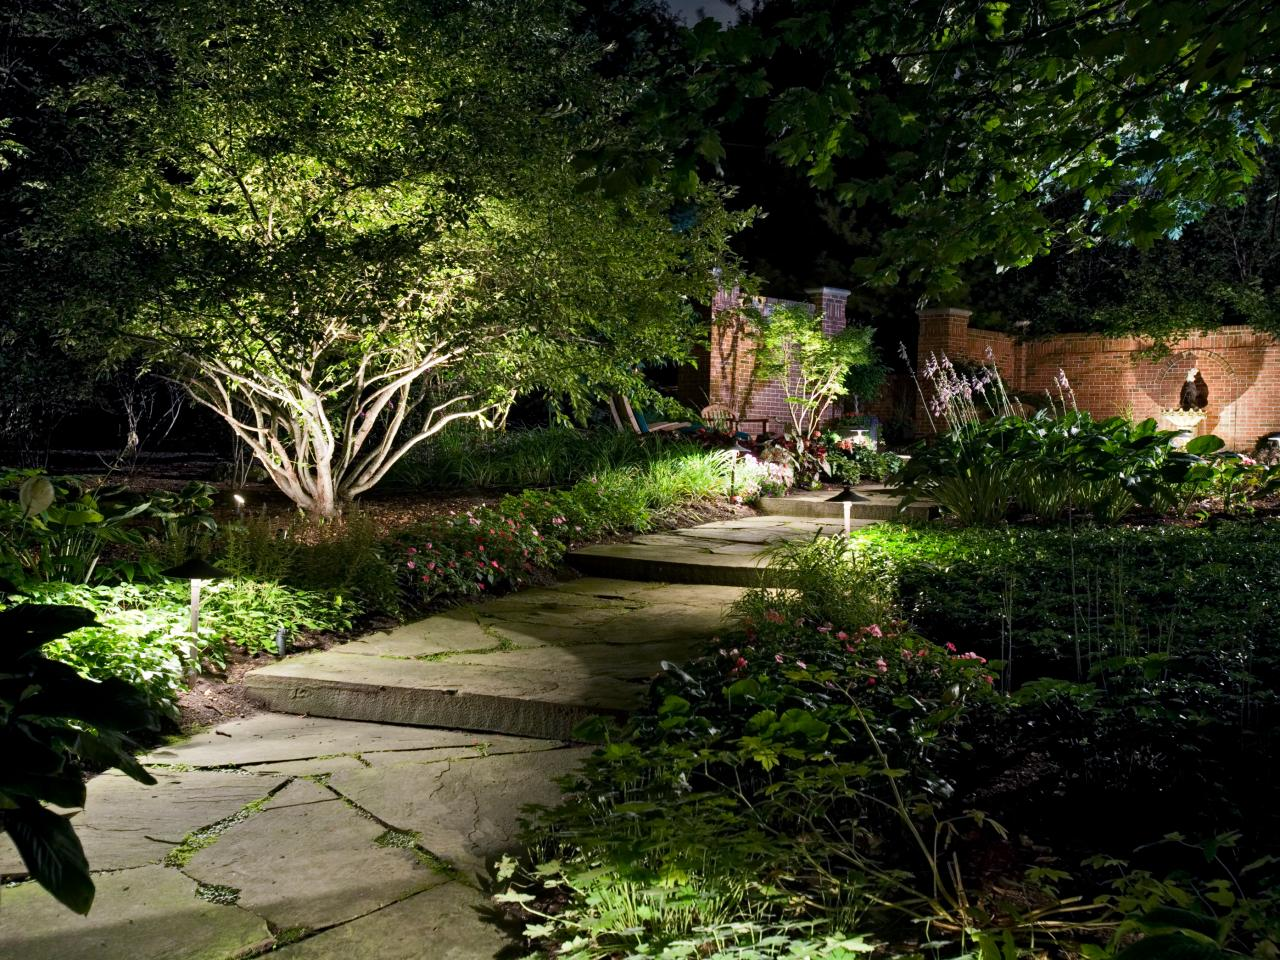 https://secureservercdn.net/198.71.233.197/f0f.f43.myftpupload.com/wp-content/uploads/2017/02/Landscape-Lighting-Back-Pathway-BlueSkyRain.com_.jpg